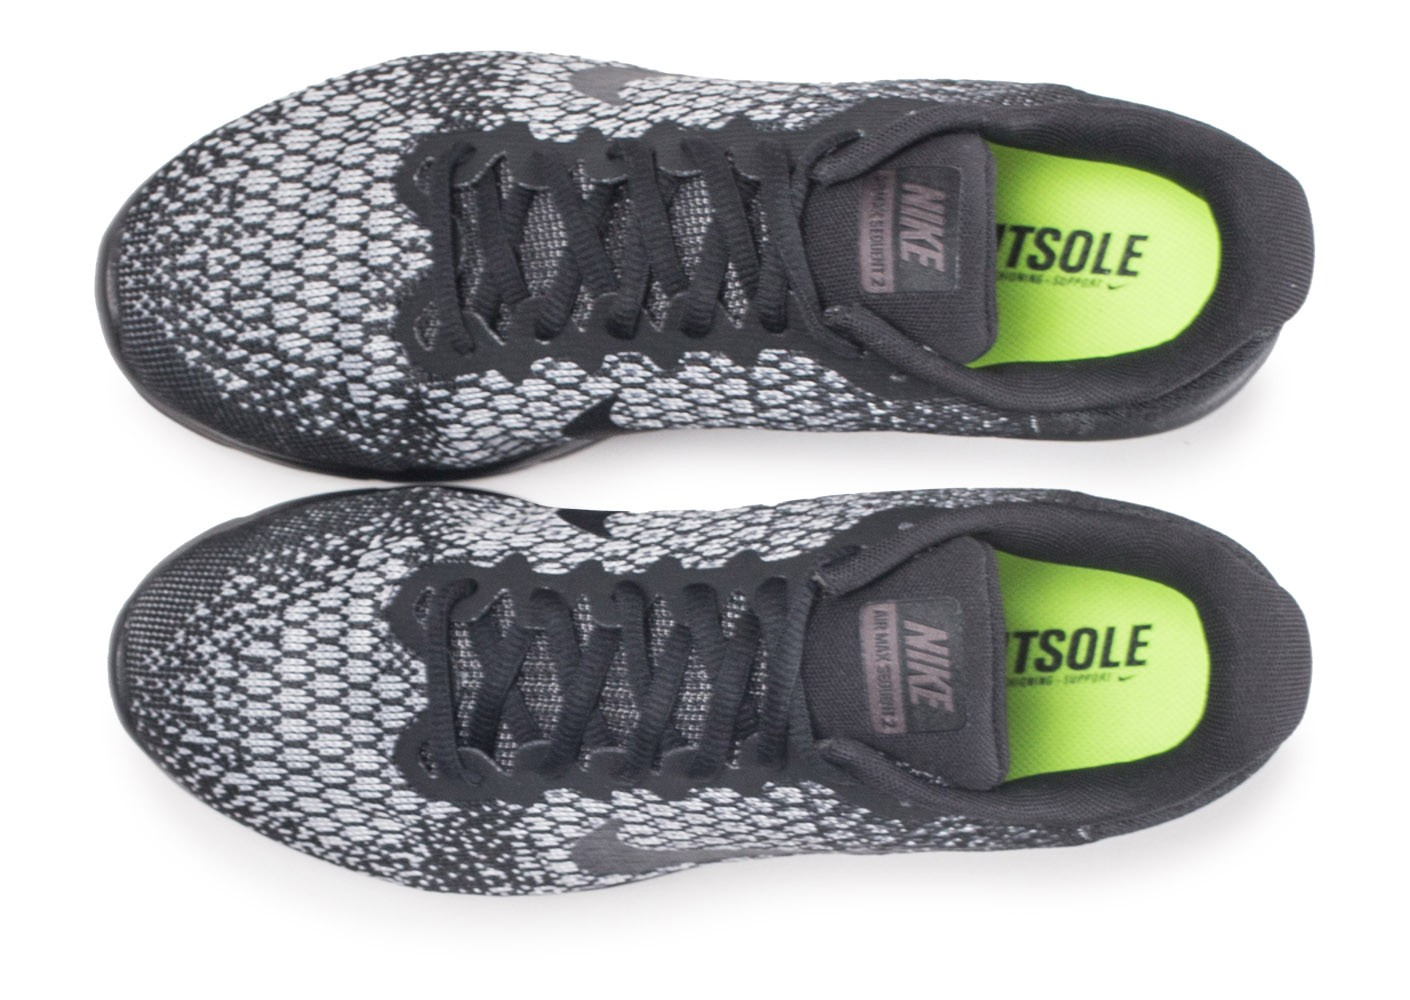 lace up in best sneakers uk store Nike Air Max Sequent 2 noire - Chaussures Baskets homme - Chausport